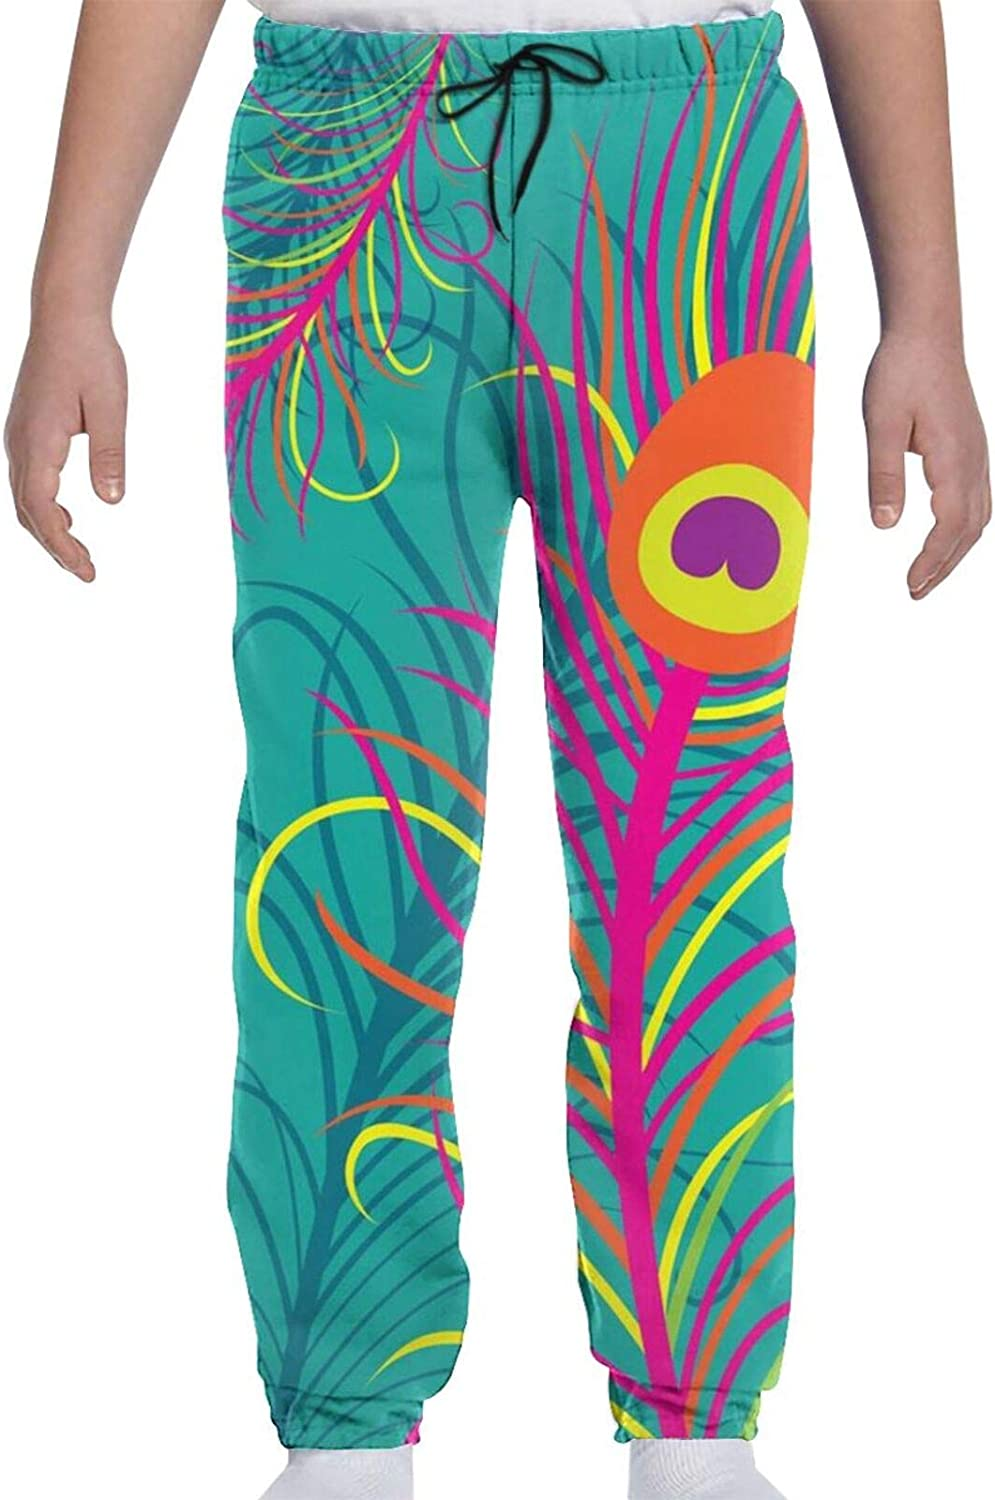 Oomato Feather Special price for a limited time Special sale item Youth Sweatpants 3D Print Teens Trousers Gi Boys